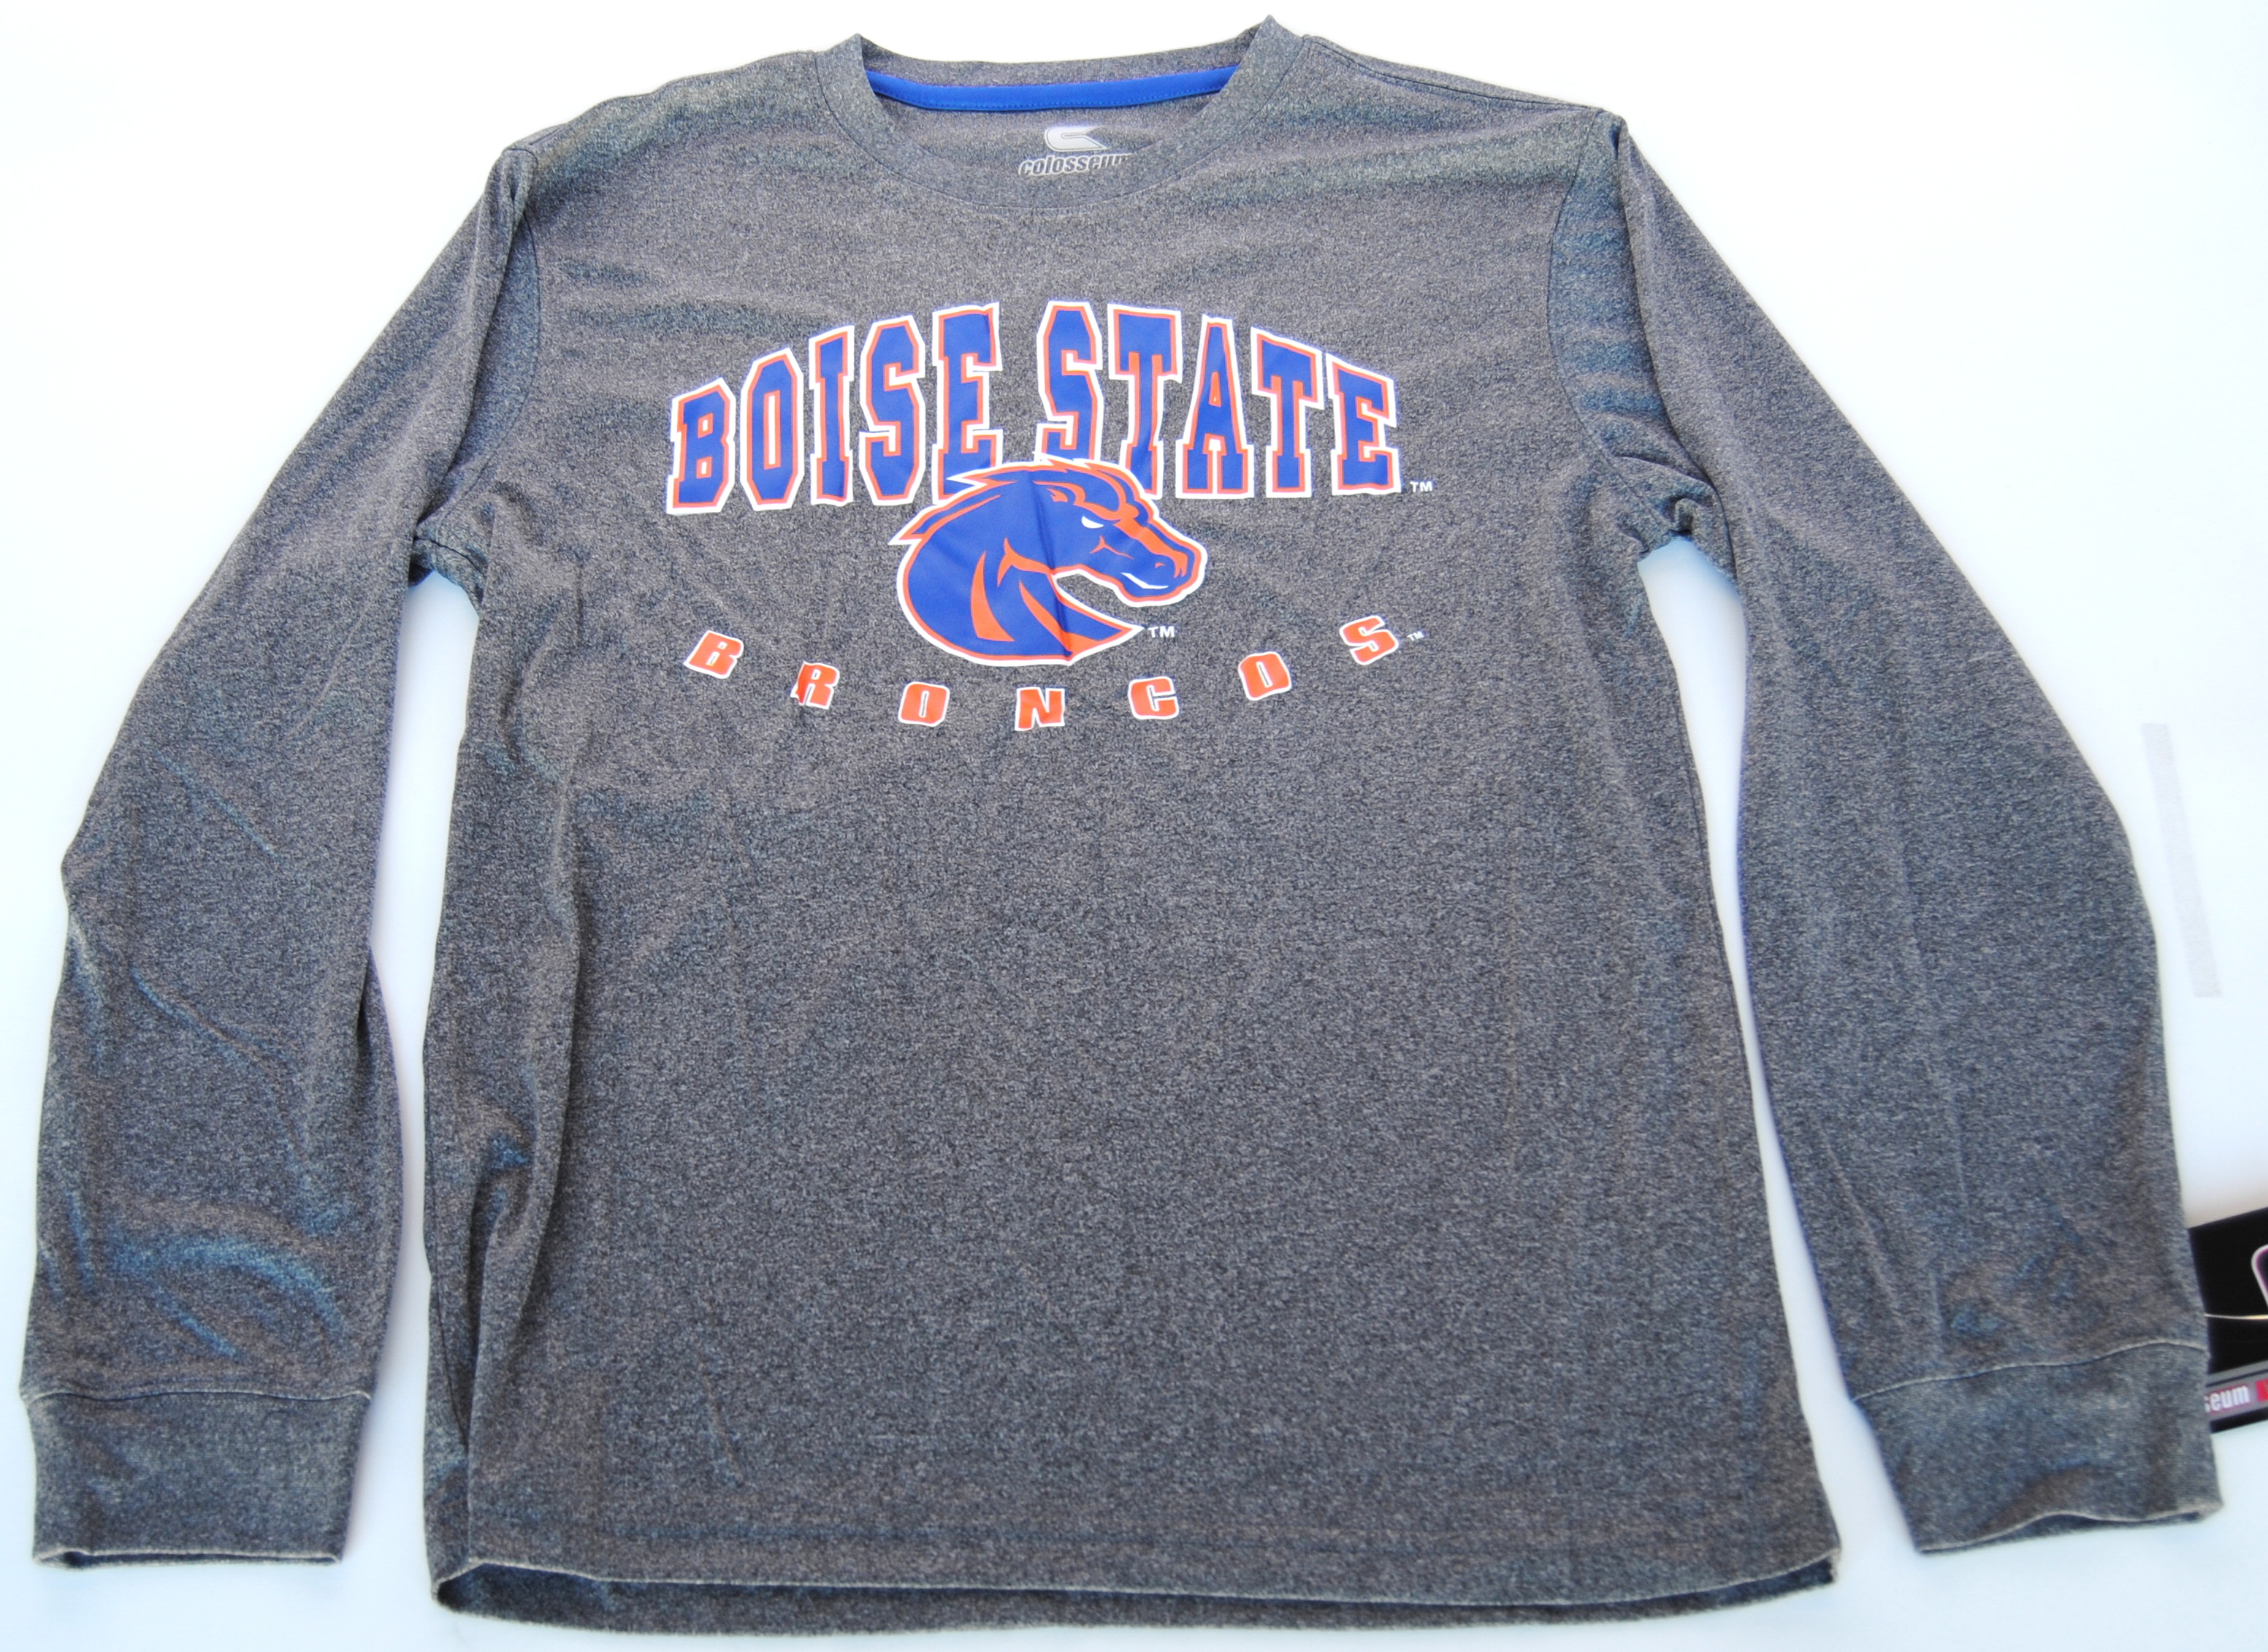 Colosseum Athletics Boise State Broncos Colosseum Athletics Gray Youth Long Sleeve T-Shirt 16-18 (L) at Sears.com